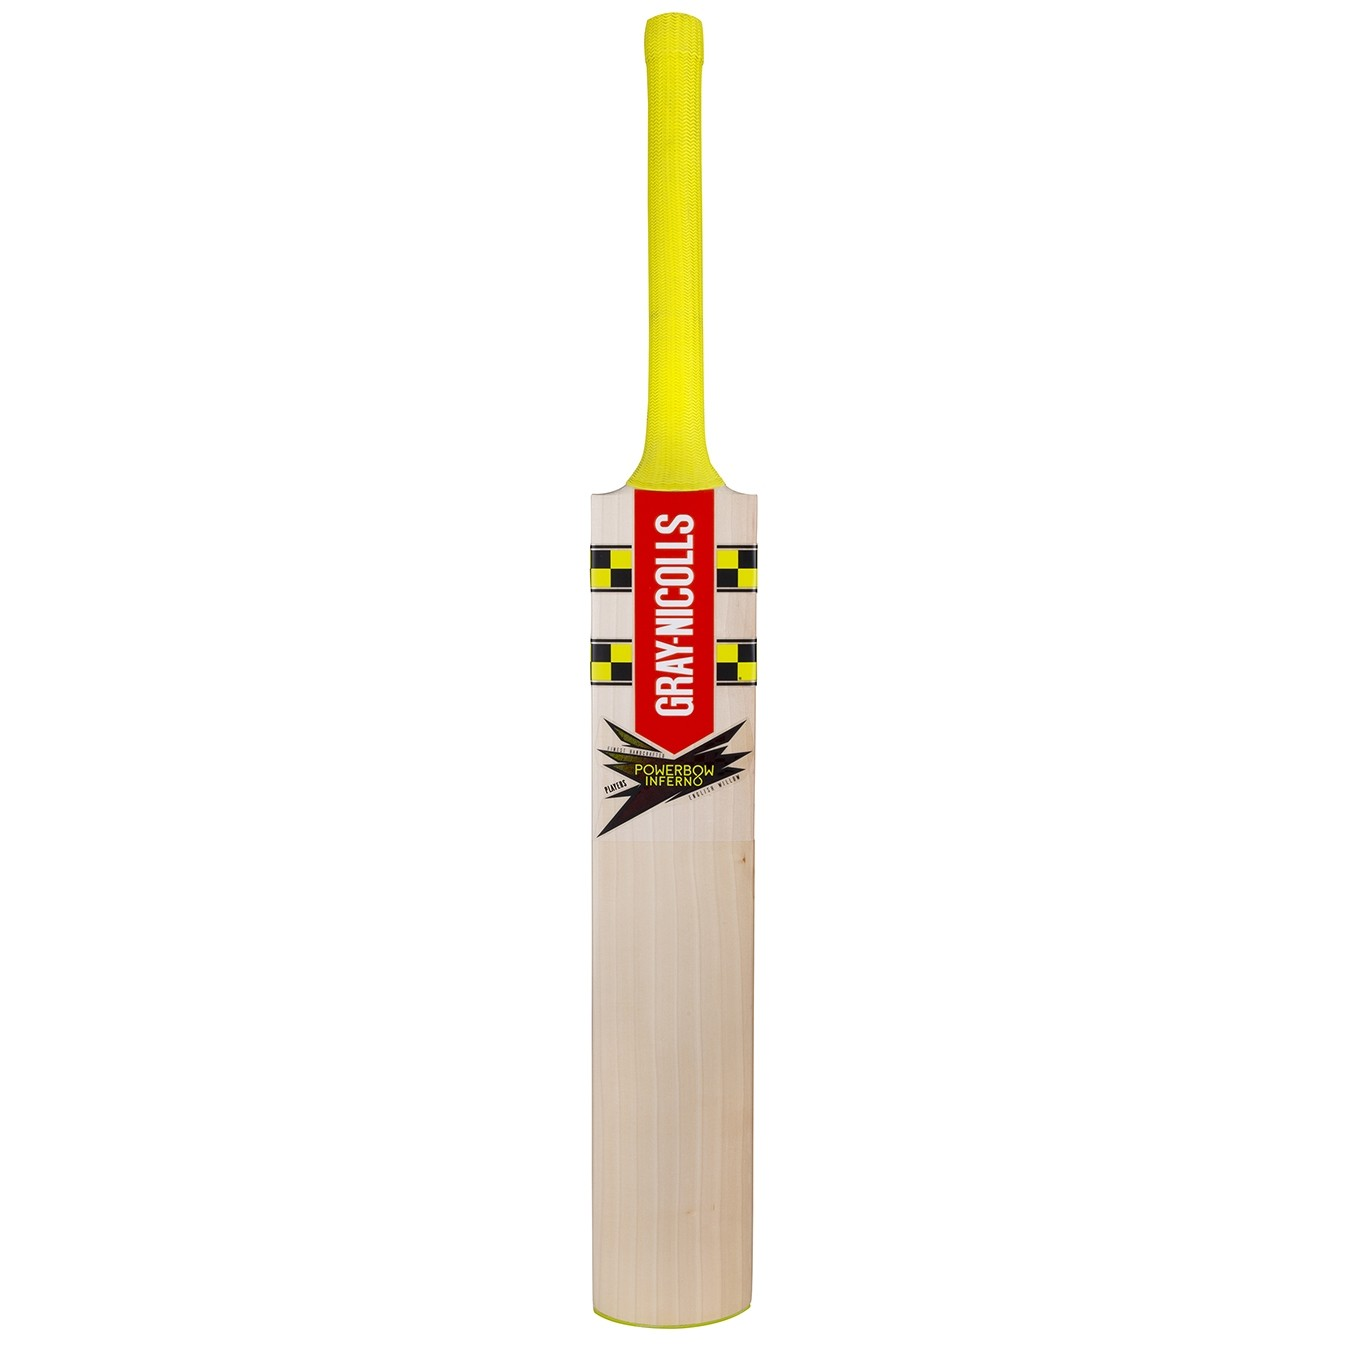 2018 Gray Nicolls Powerbow 6 Thunder Junior Cricket Bat